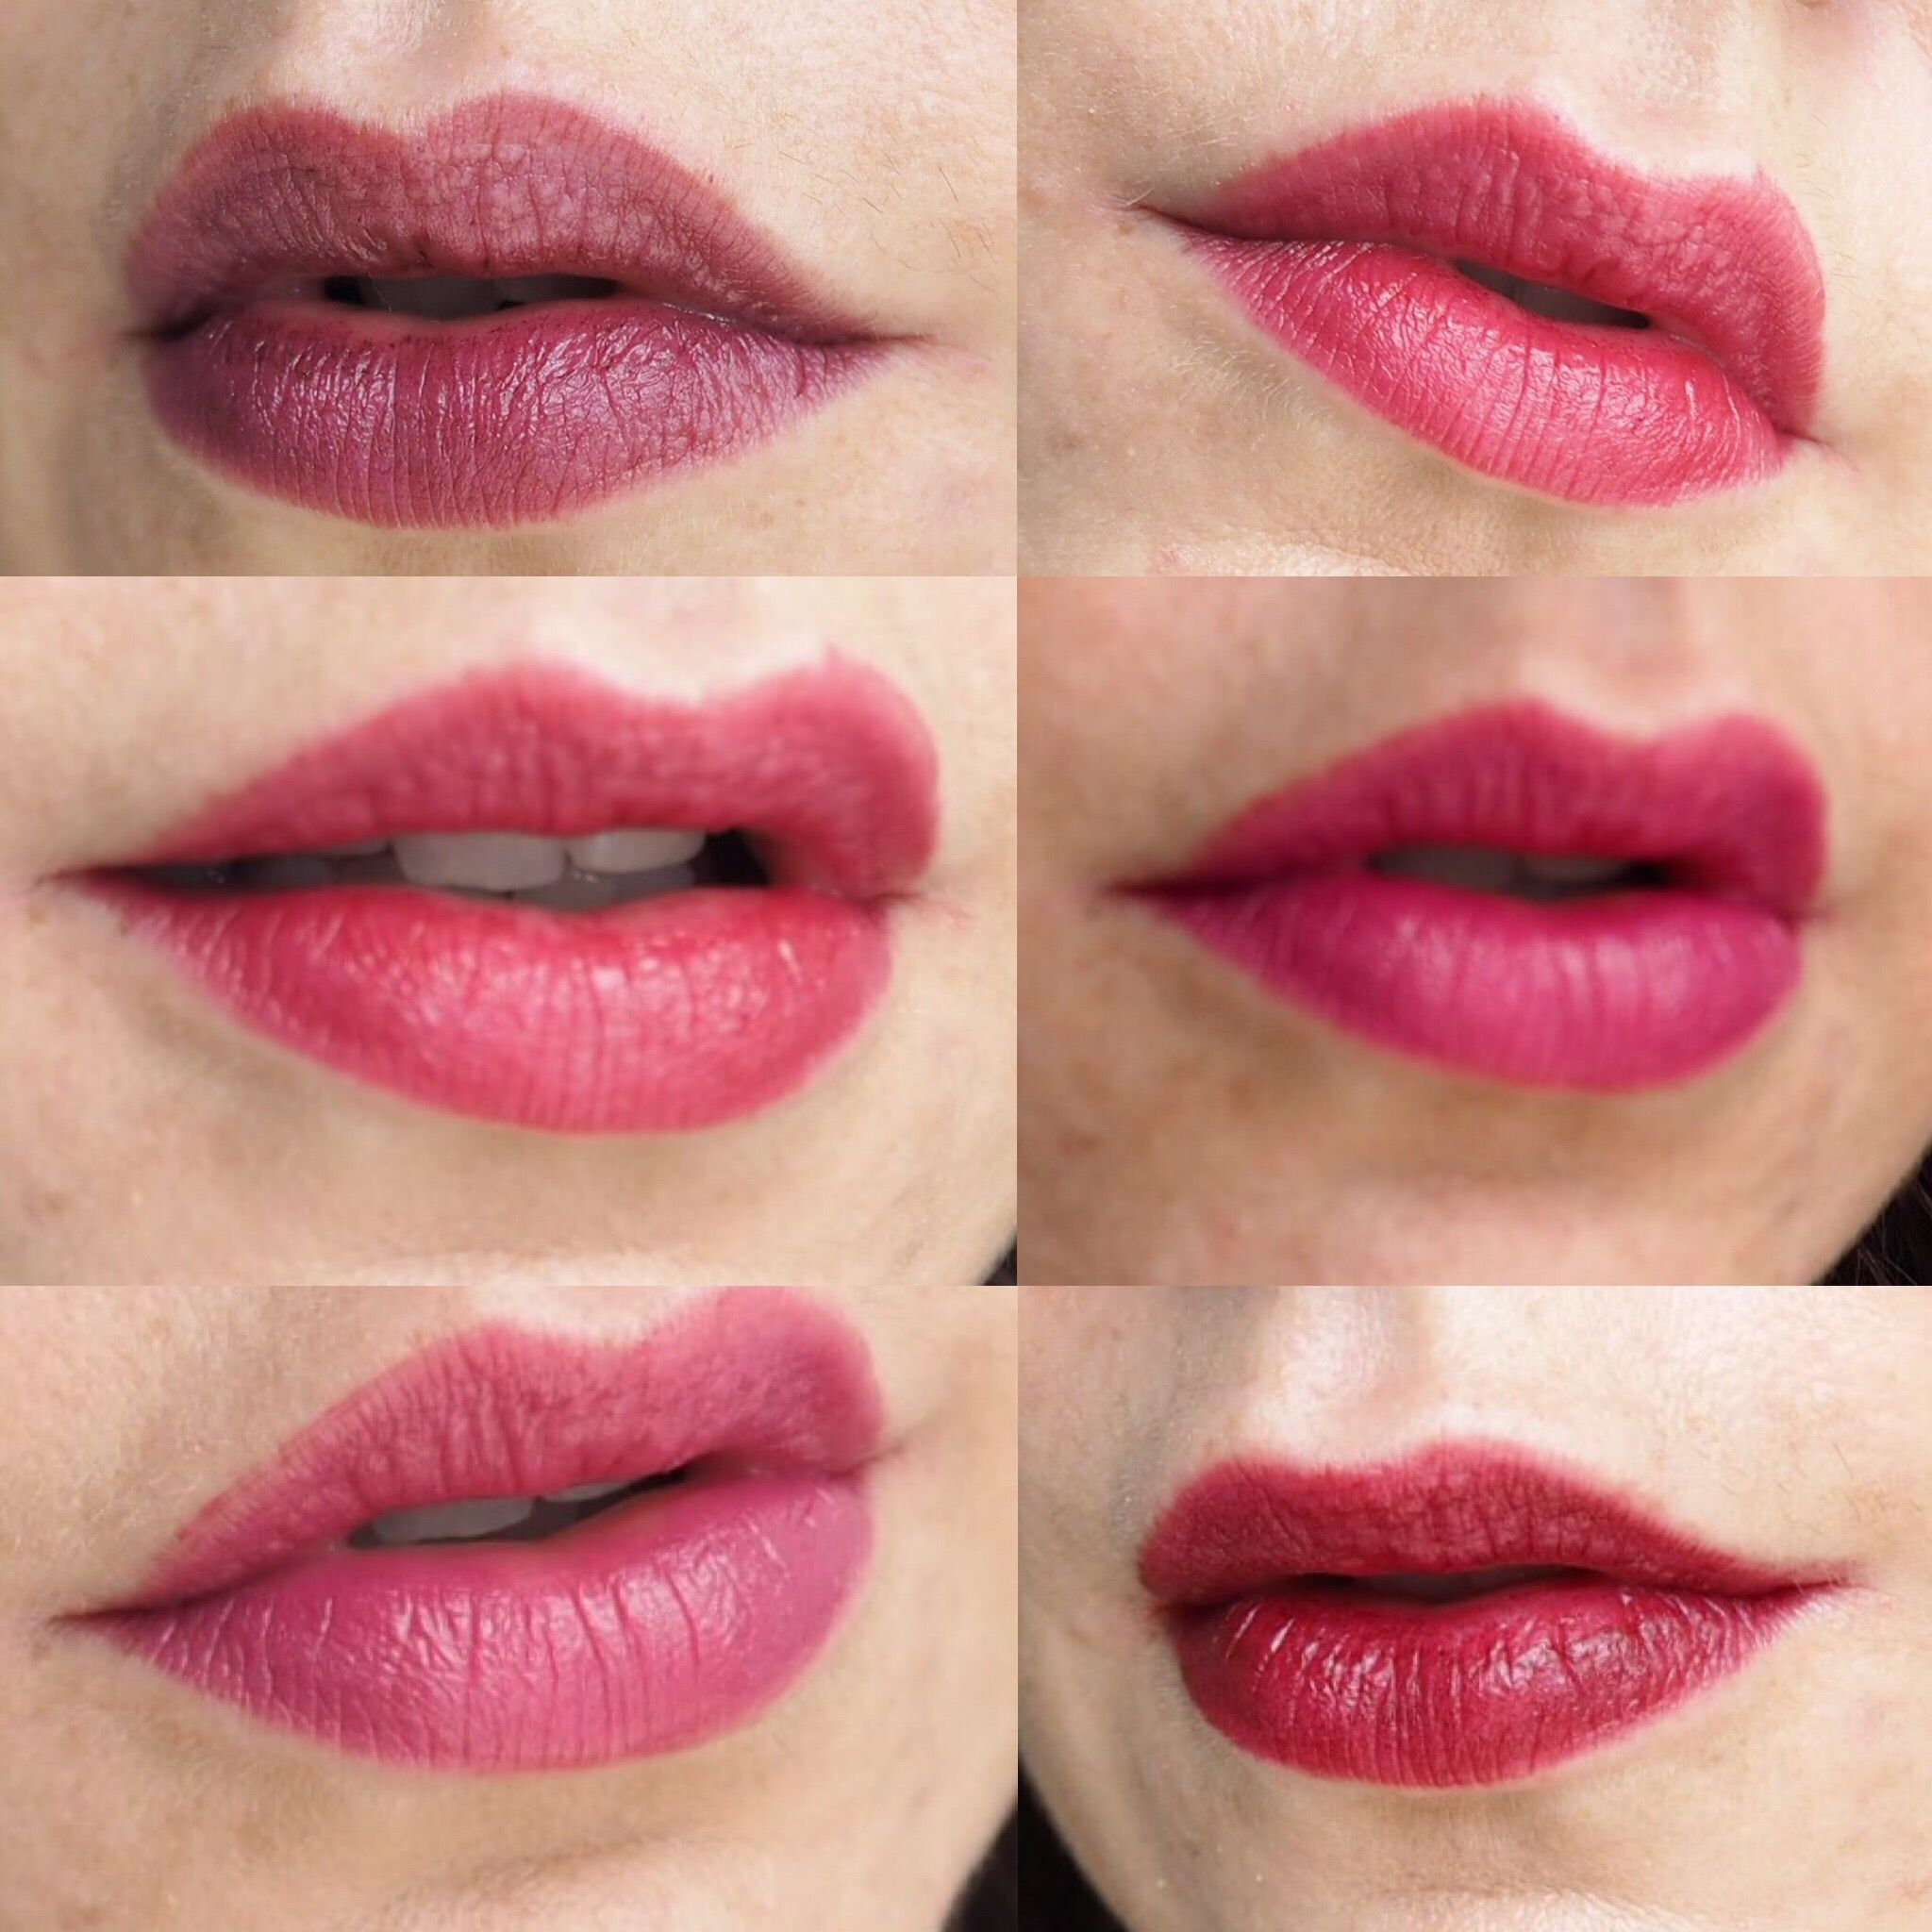 Nyx Pro Lip Cream Palette In The Plums A Collage Of 6 Photos Soft Matte All Variant Lips Each Wearing Different Shade From